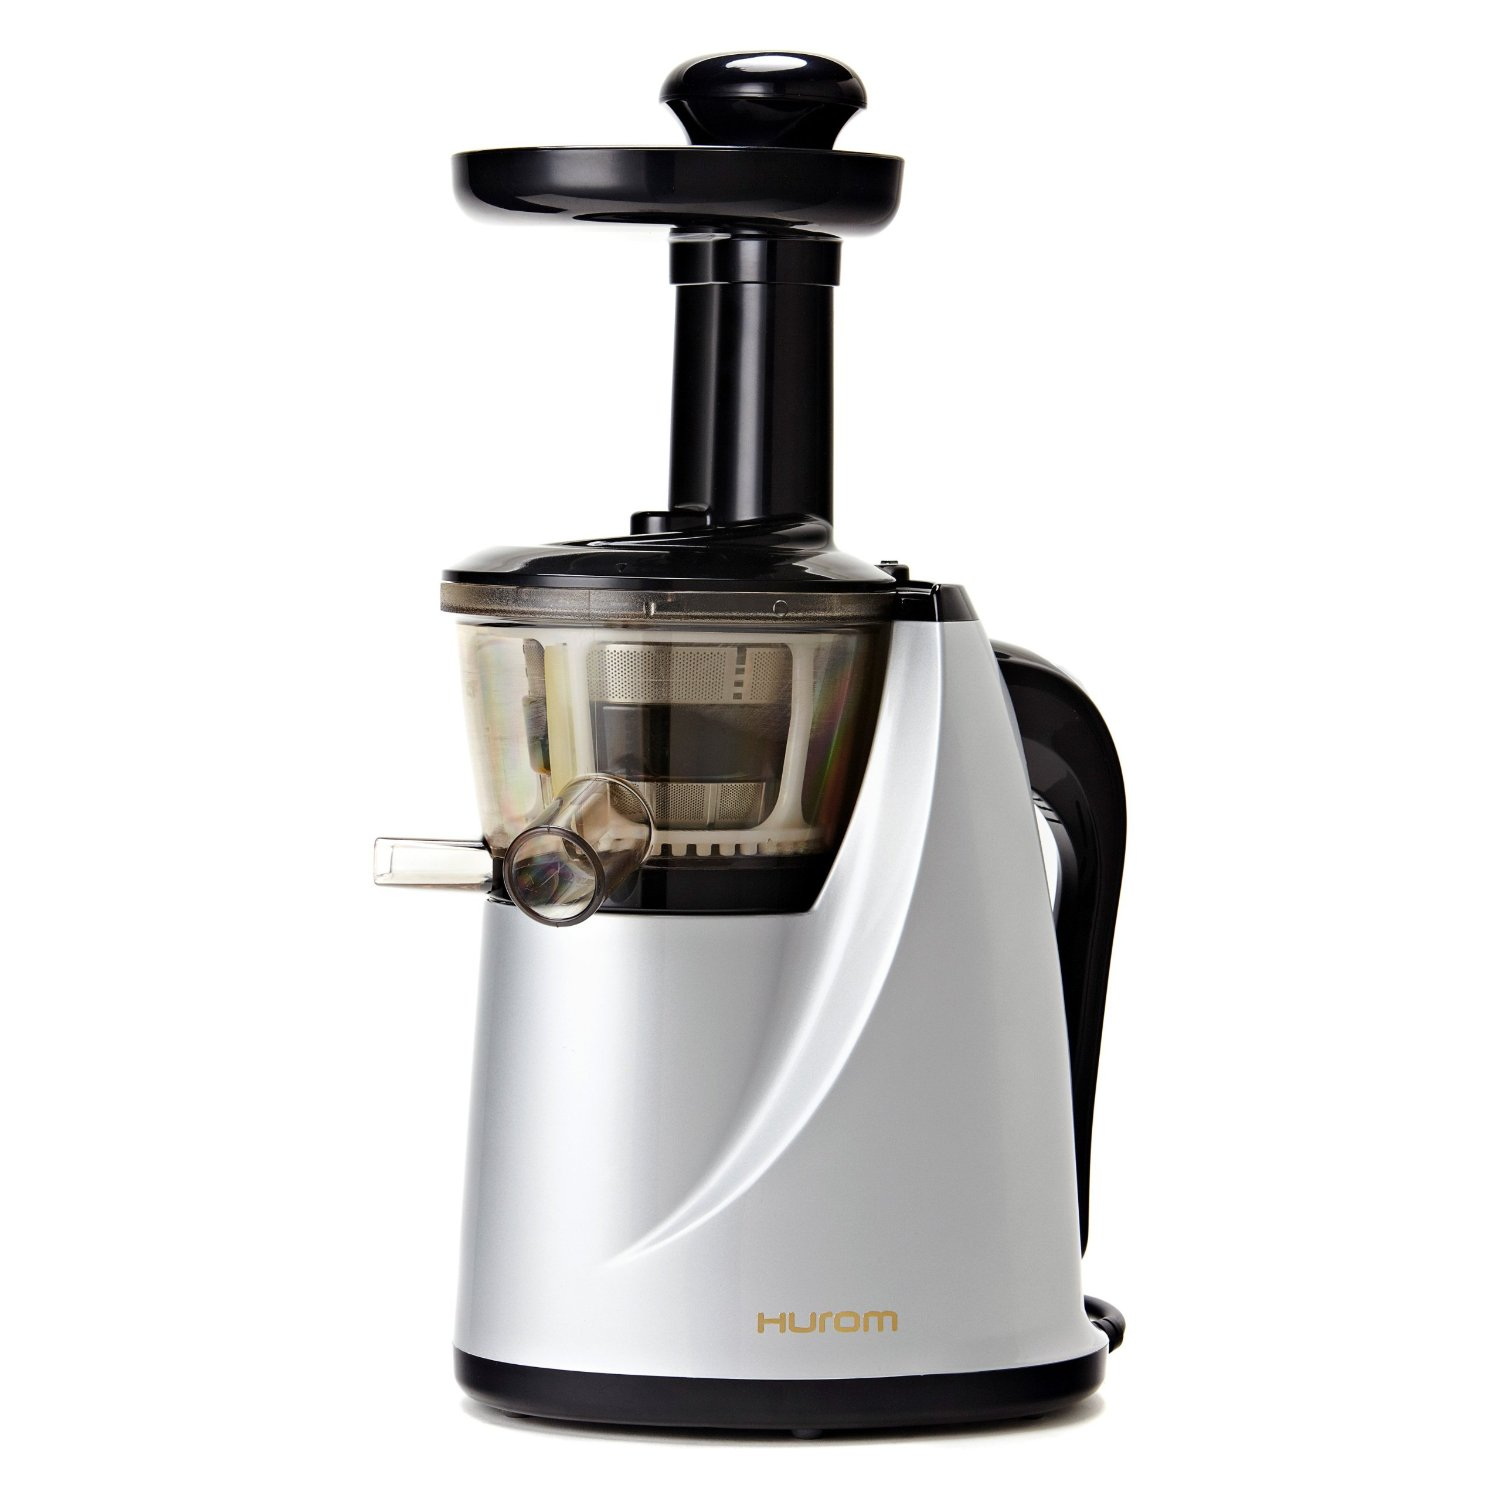 Hurom Hu 500sv Slow Juicer Review : Hurom HU-100 Masticating Slow Juicer Review - Best Cold Press Juicers